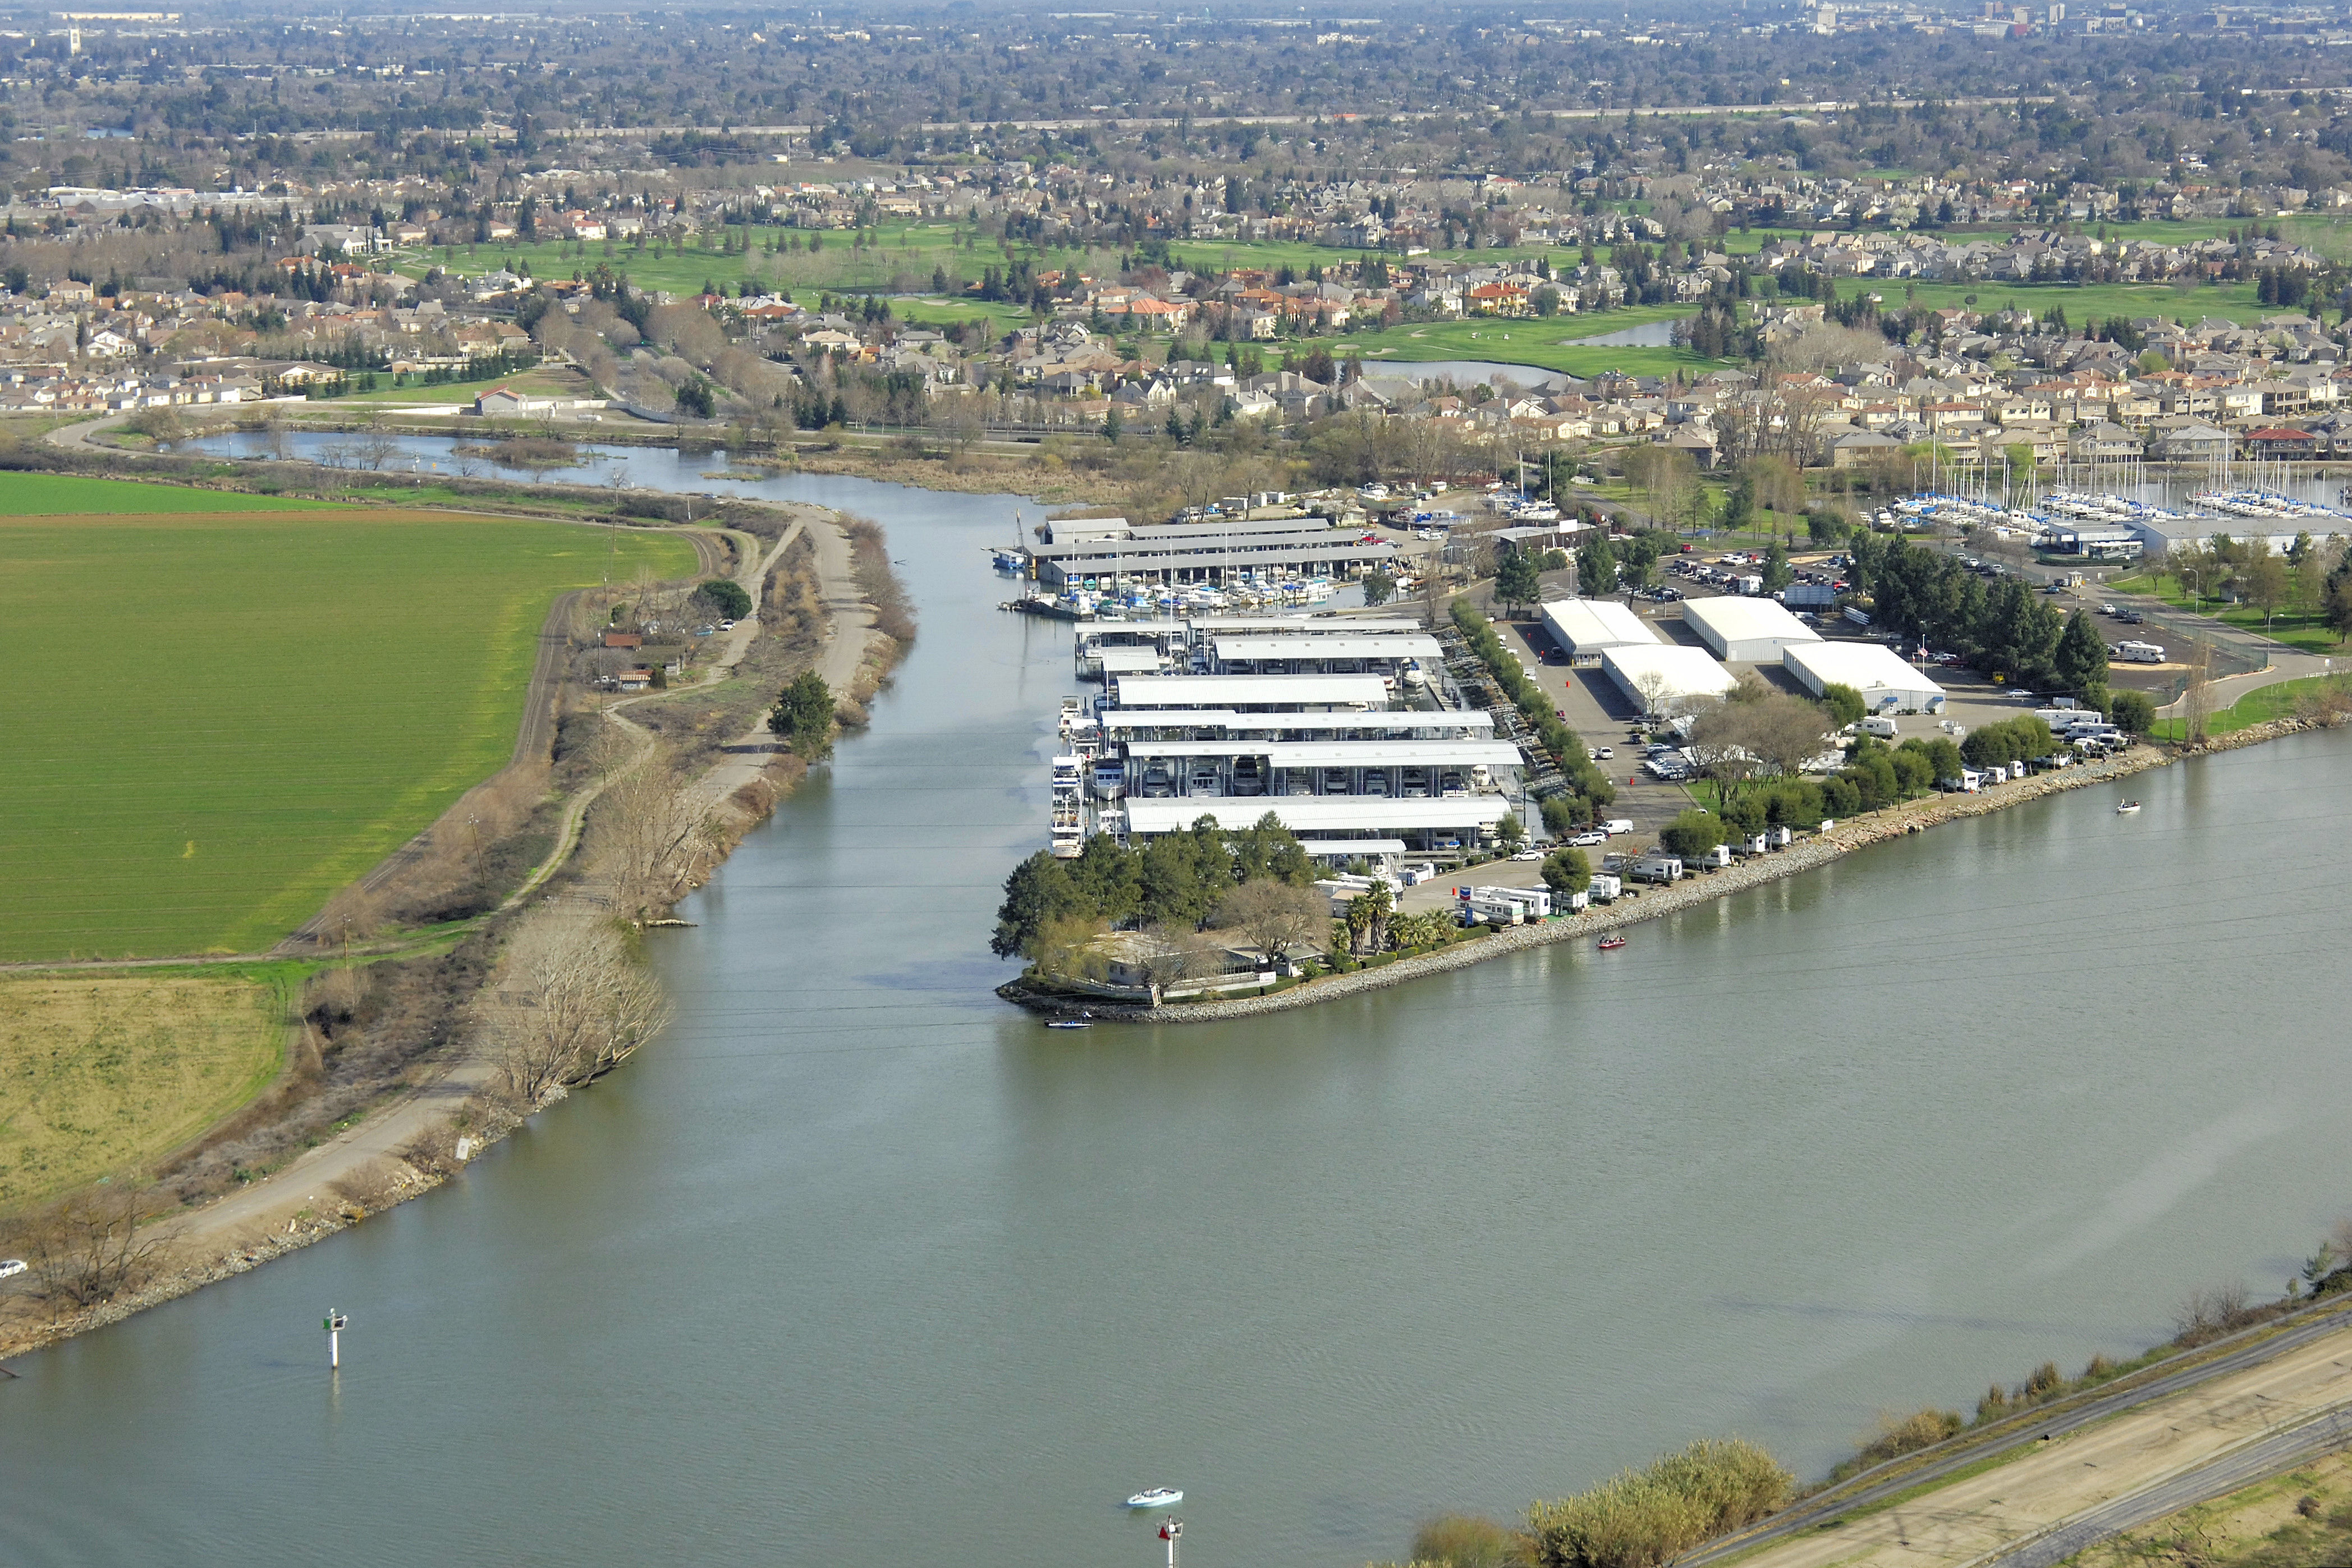 River point landing marina in stockton ca united states for Riverpointe